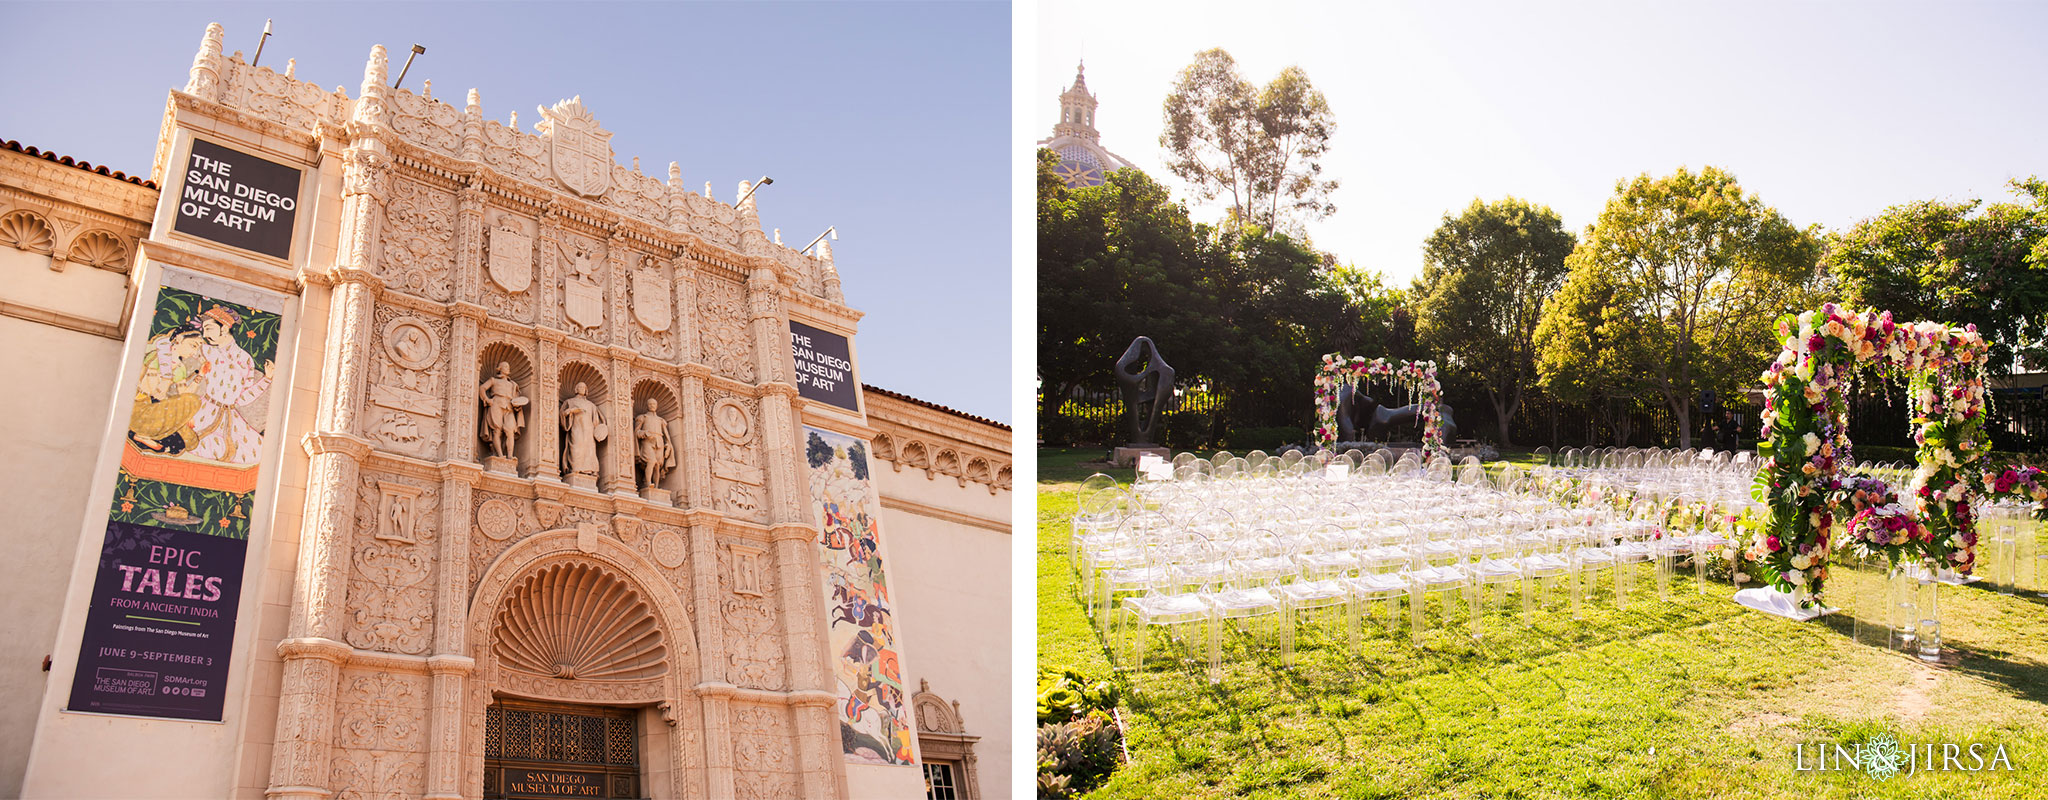 051 san diego museum of art architecture wedding ceremony photography